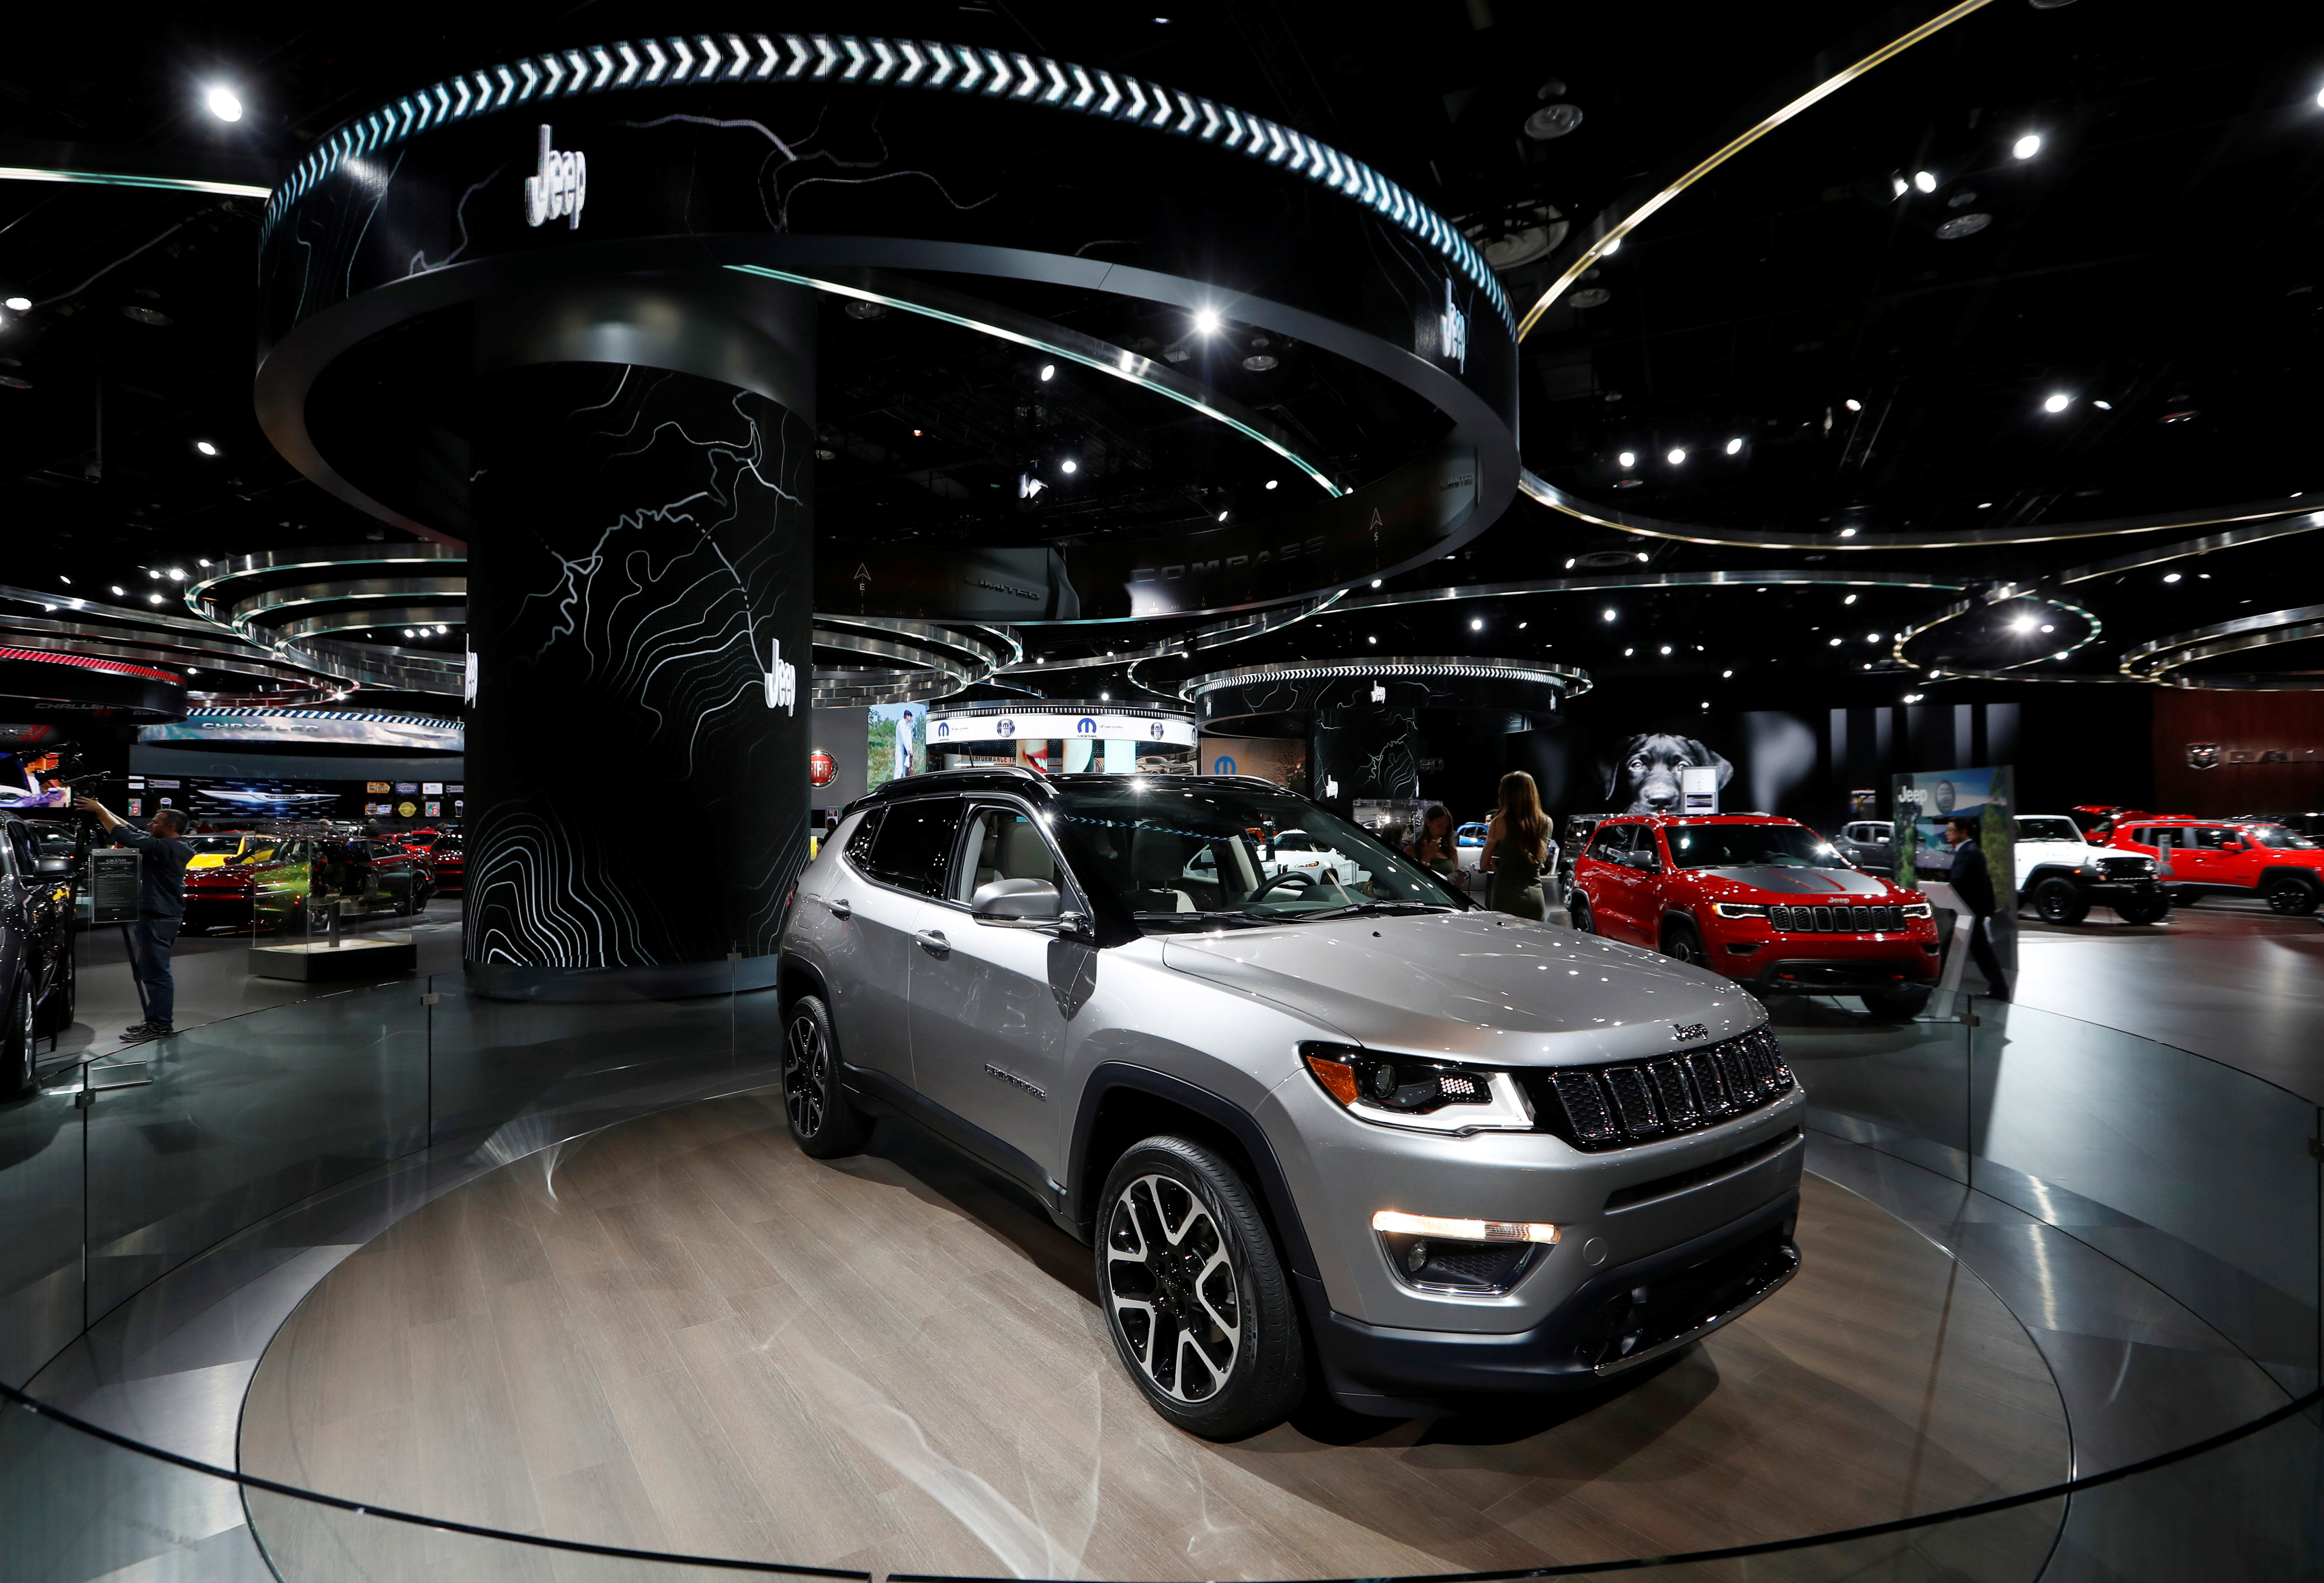 The 2017 Jeep Compass is displayed during the North American International Auto Show in Detroit